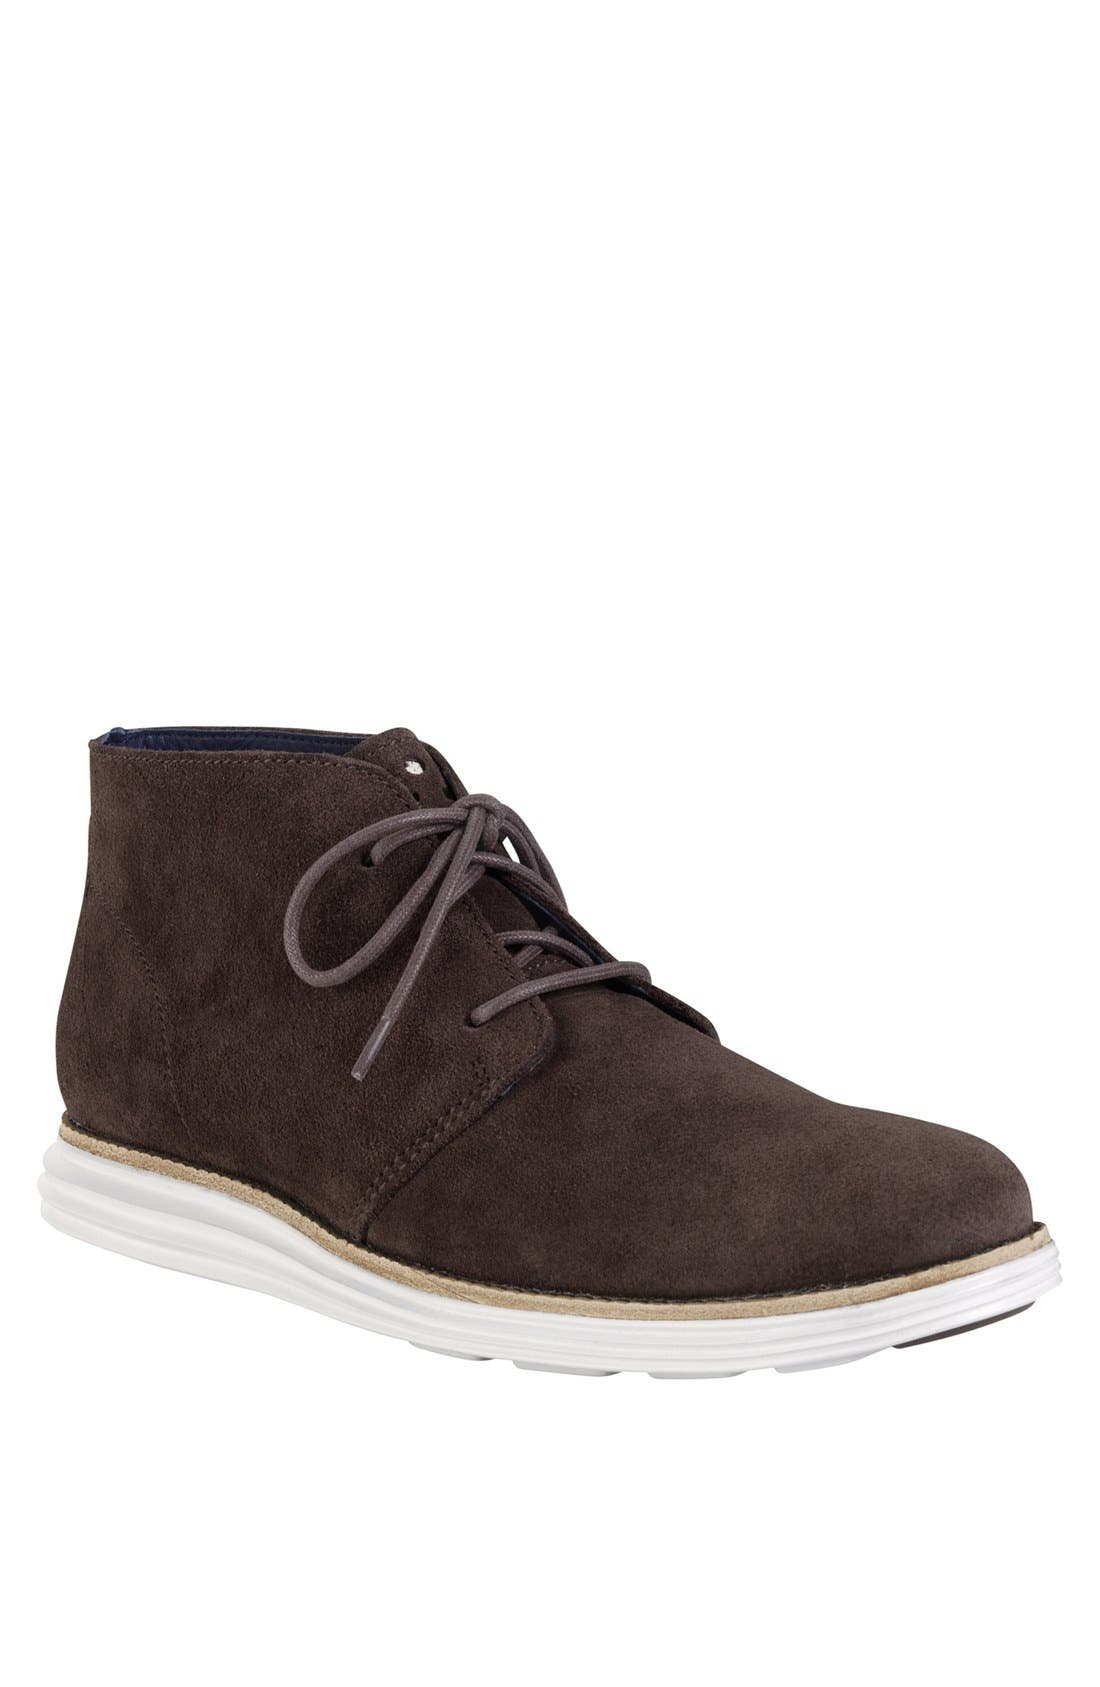 Main Image - Cole Haan 'LunarGrand' Chukka Boot   (Men)